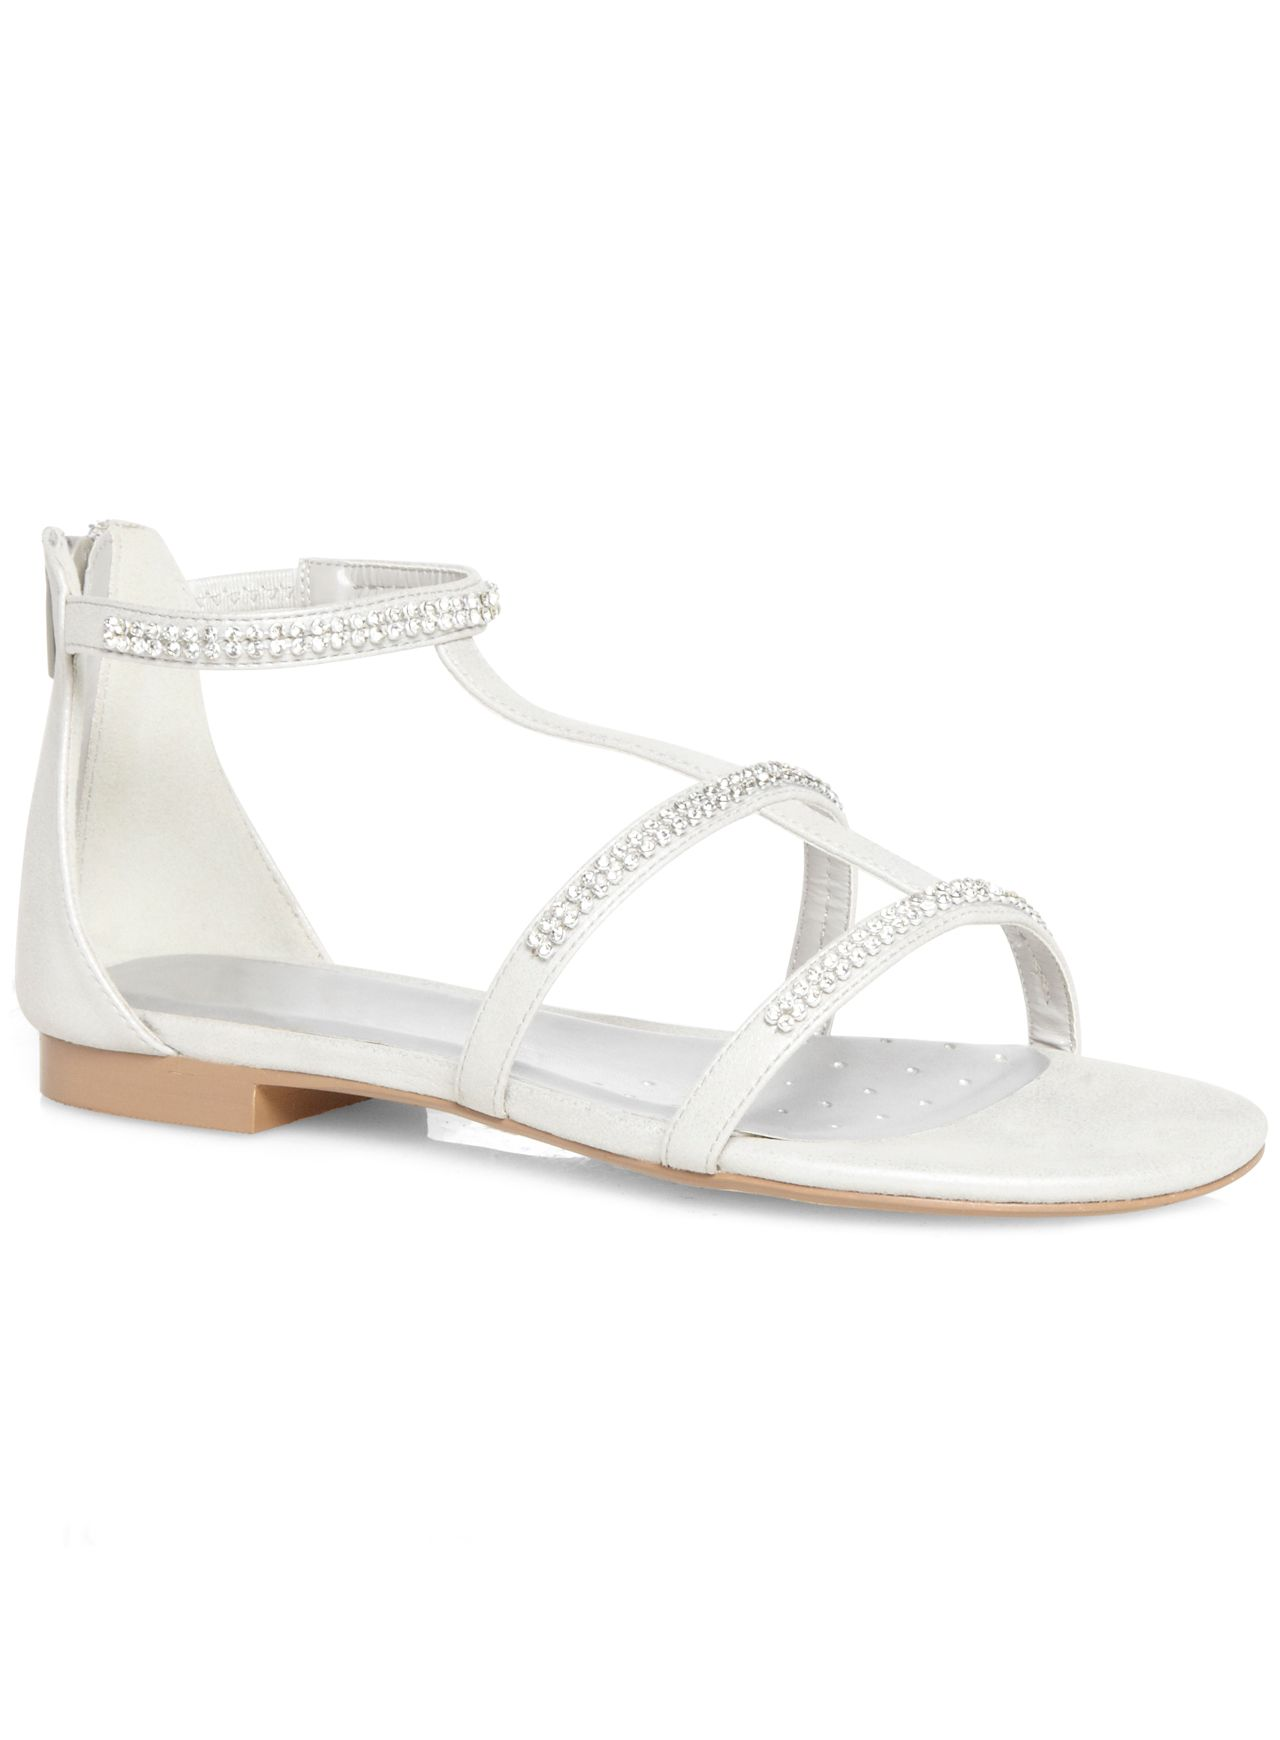 Silver Diamante H-Bar Sandal